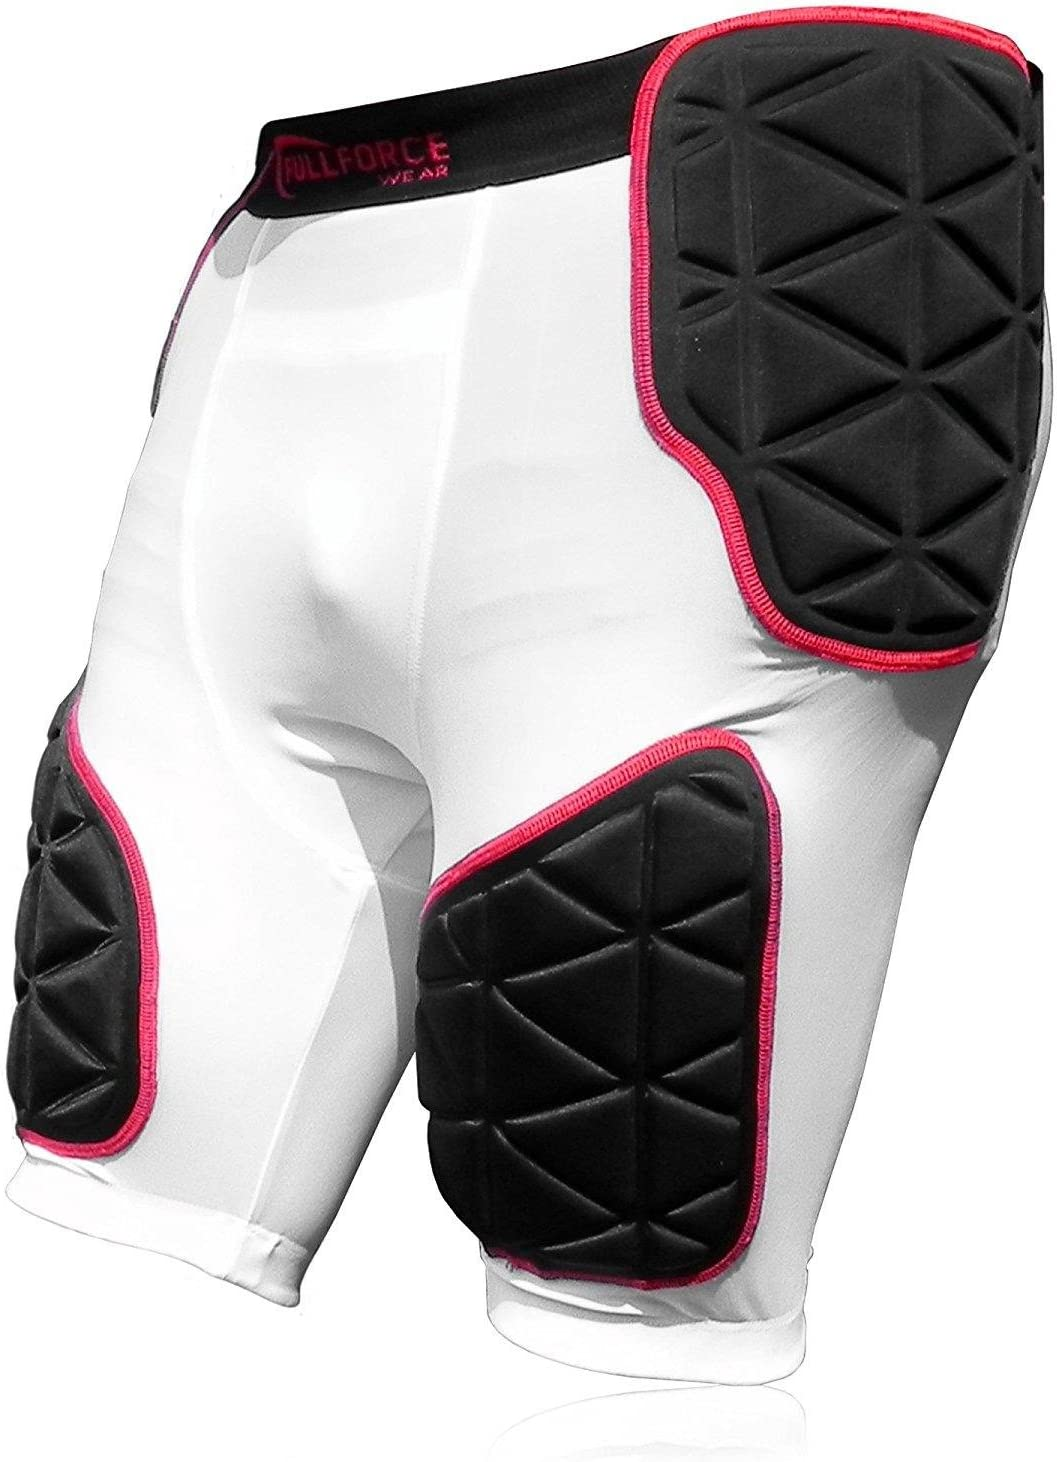 /2/x L Blanc Full Force American Football Triangle 5/Pocket Pad Girdle Taille S/